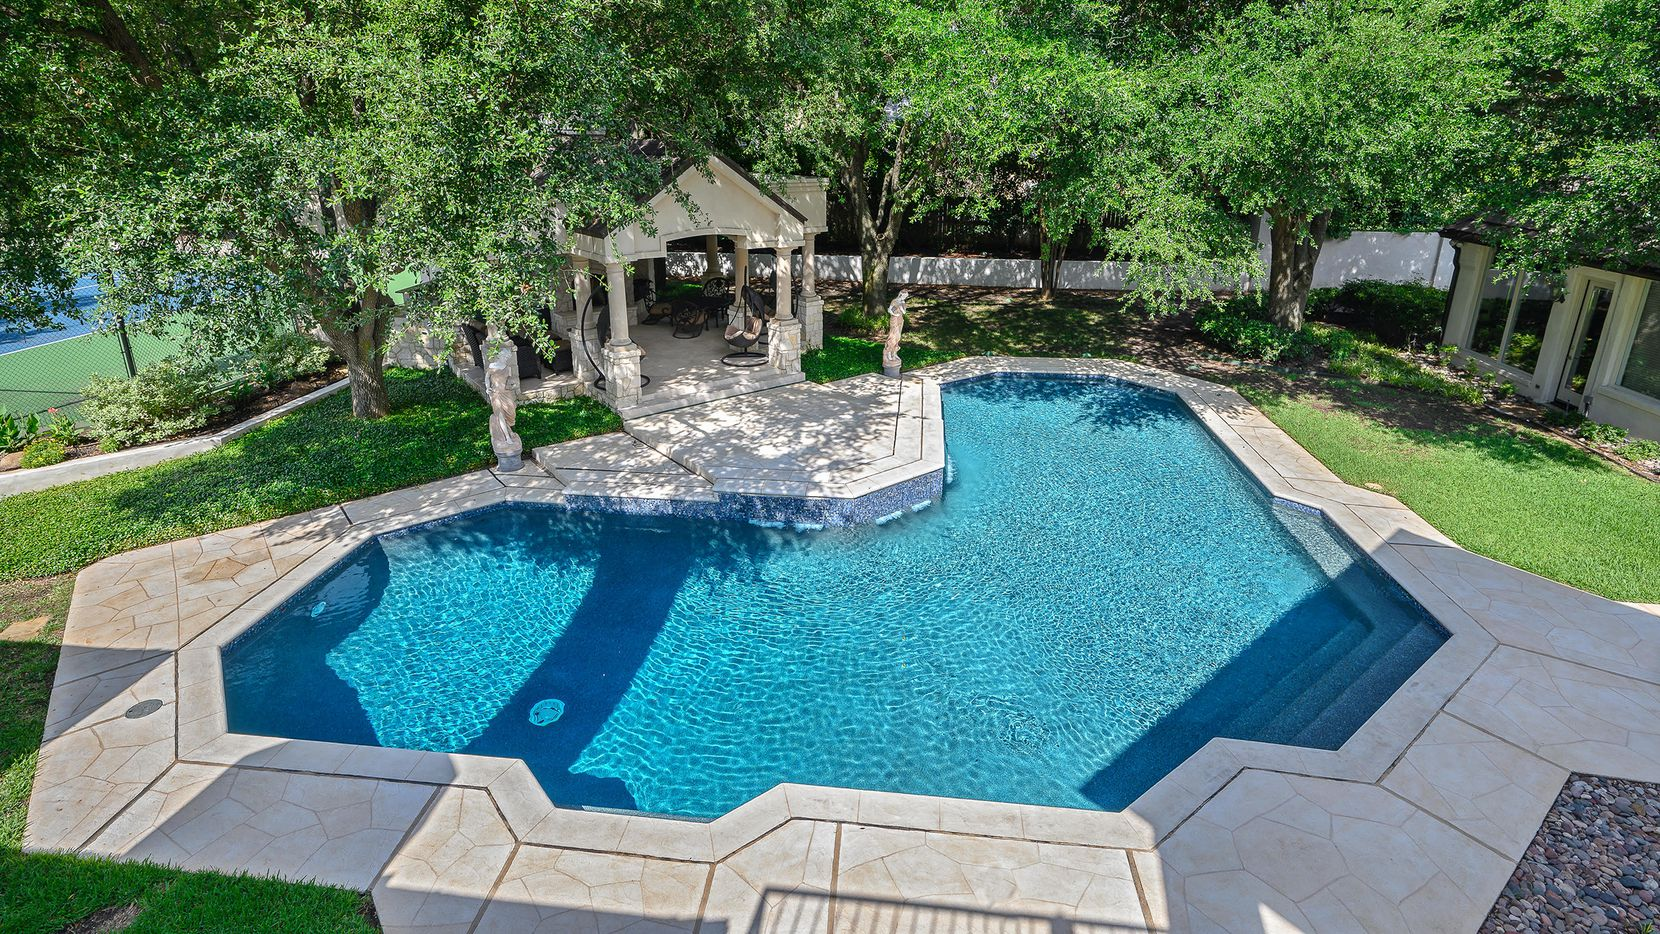 Priced at $3,375,000, the estate at 5600 Cradlerock Circle in the Willow Bend Country community features a diving pool, play yard and tennis court.